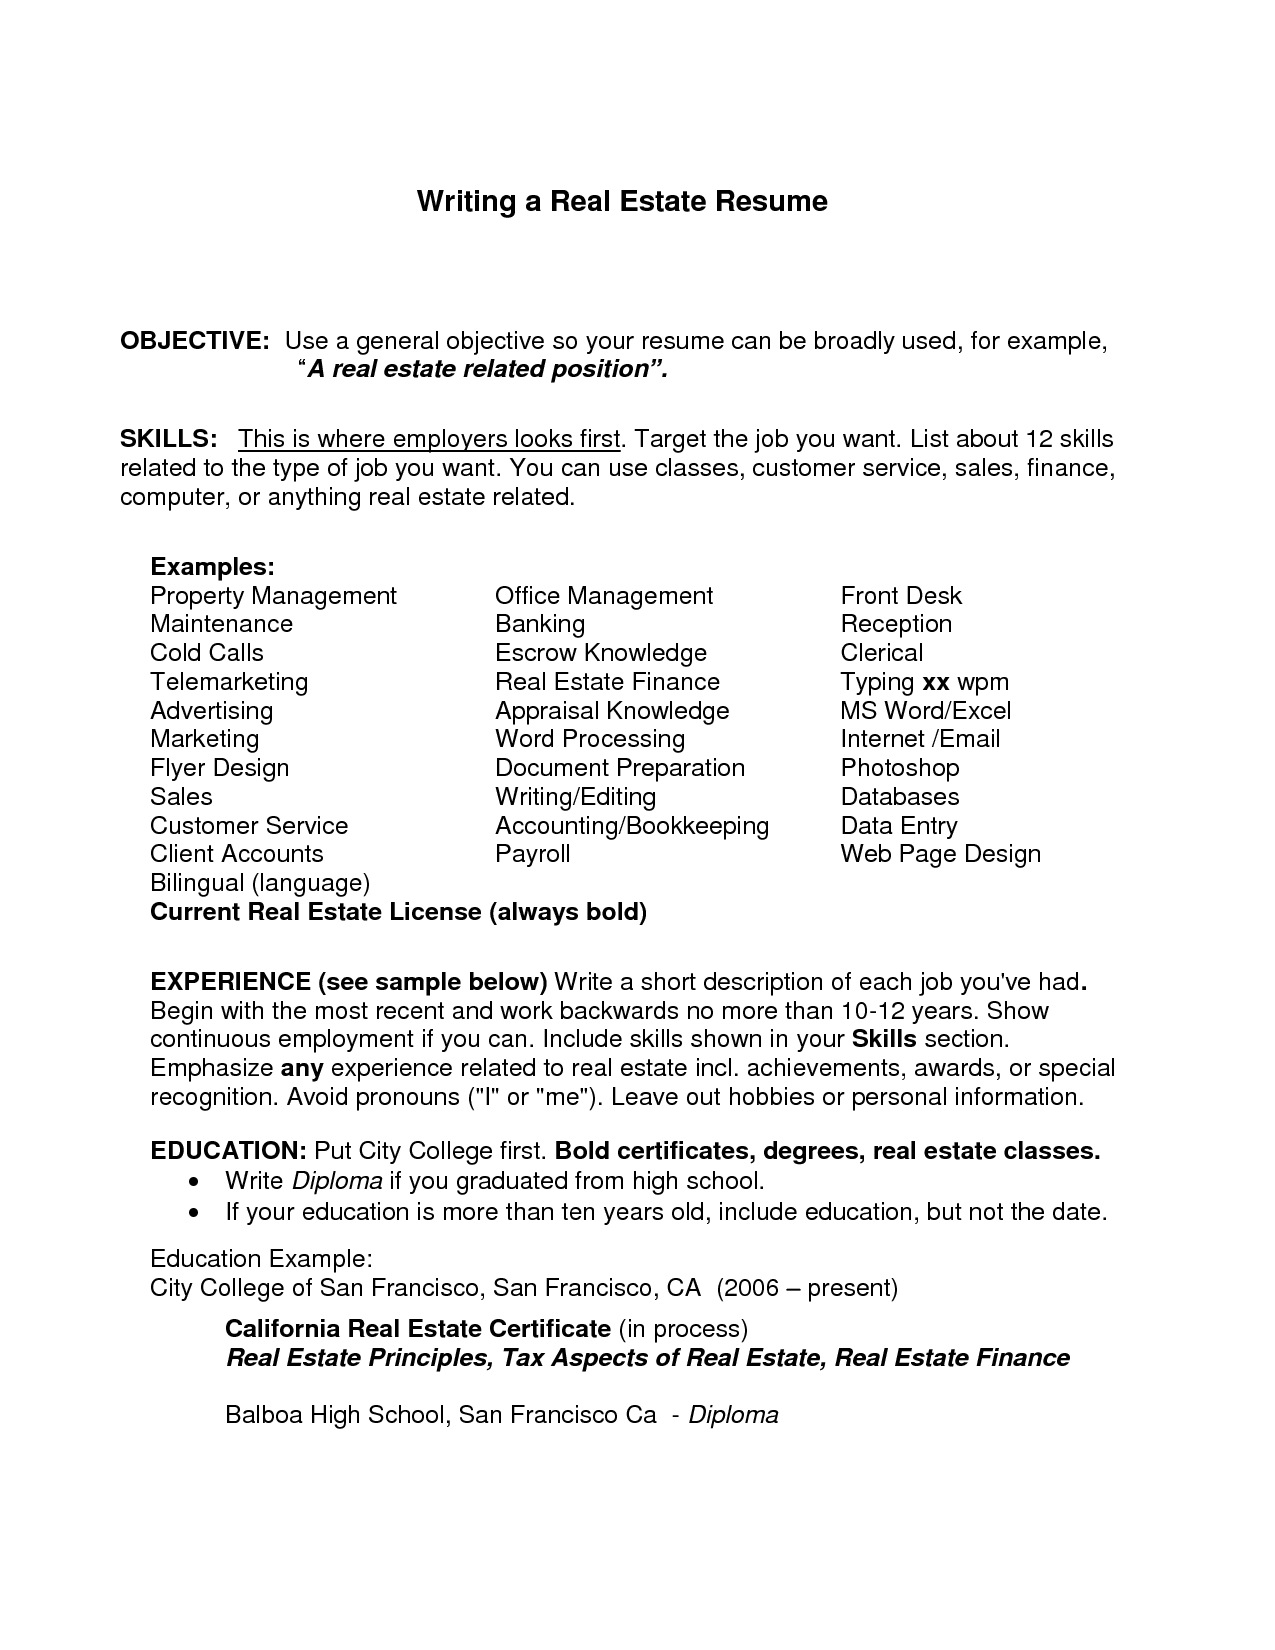 realtor resume objective real estate administrator sample for objectives cover letter - Real Estate Resumes